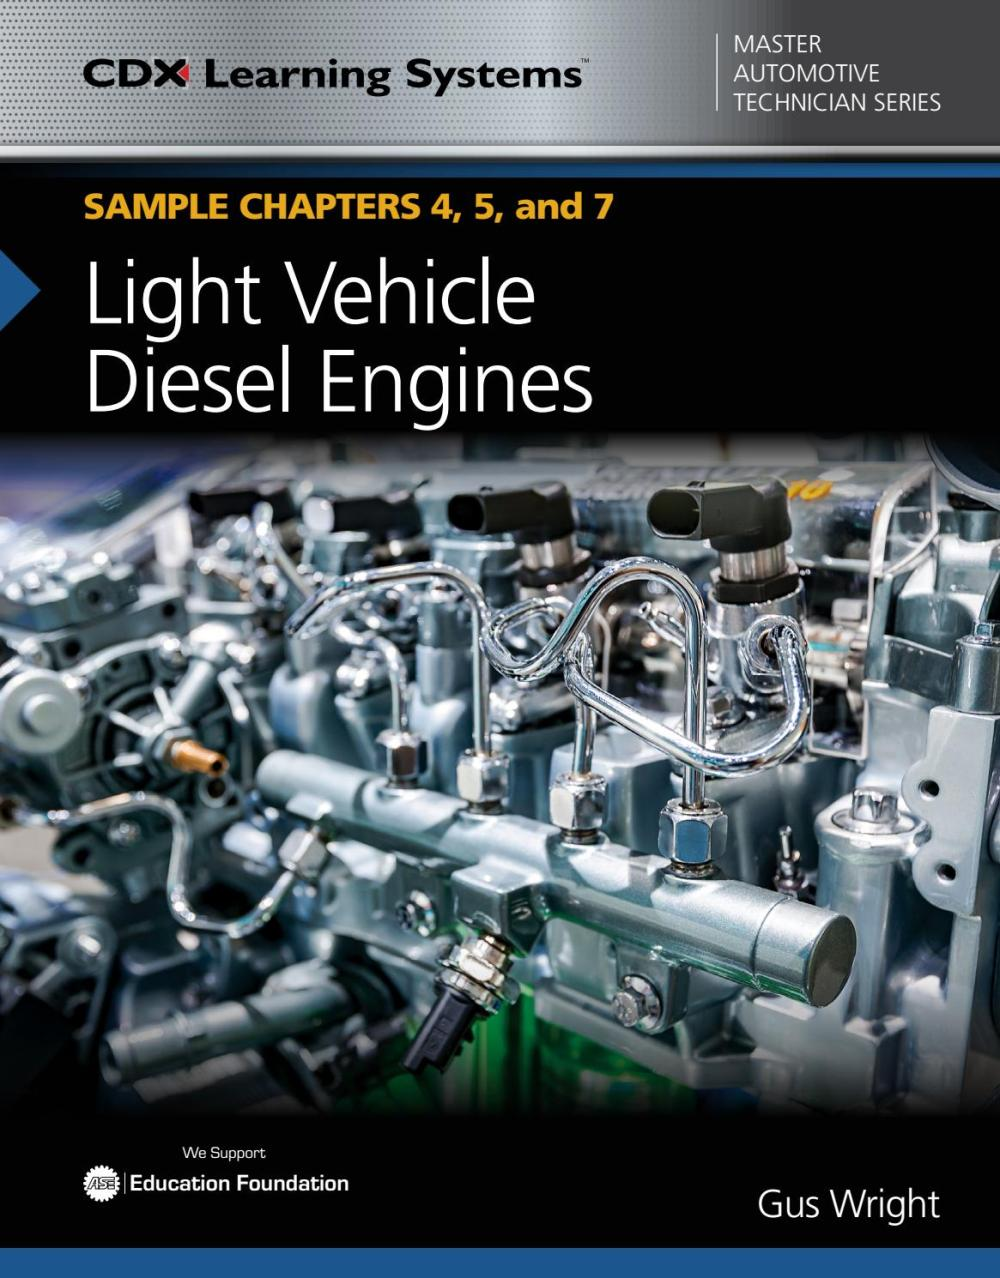 medium resolution of light vehicle diesel engines sample chapters 4 5 and 7